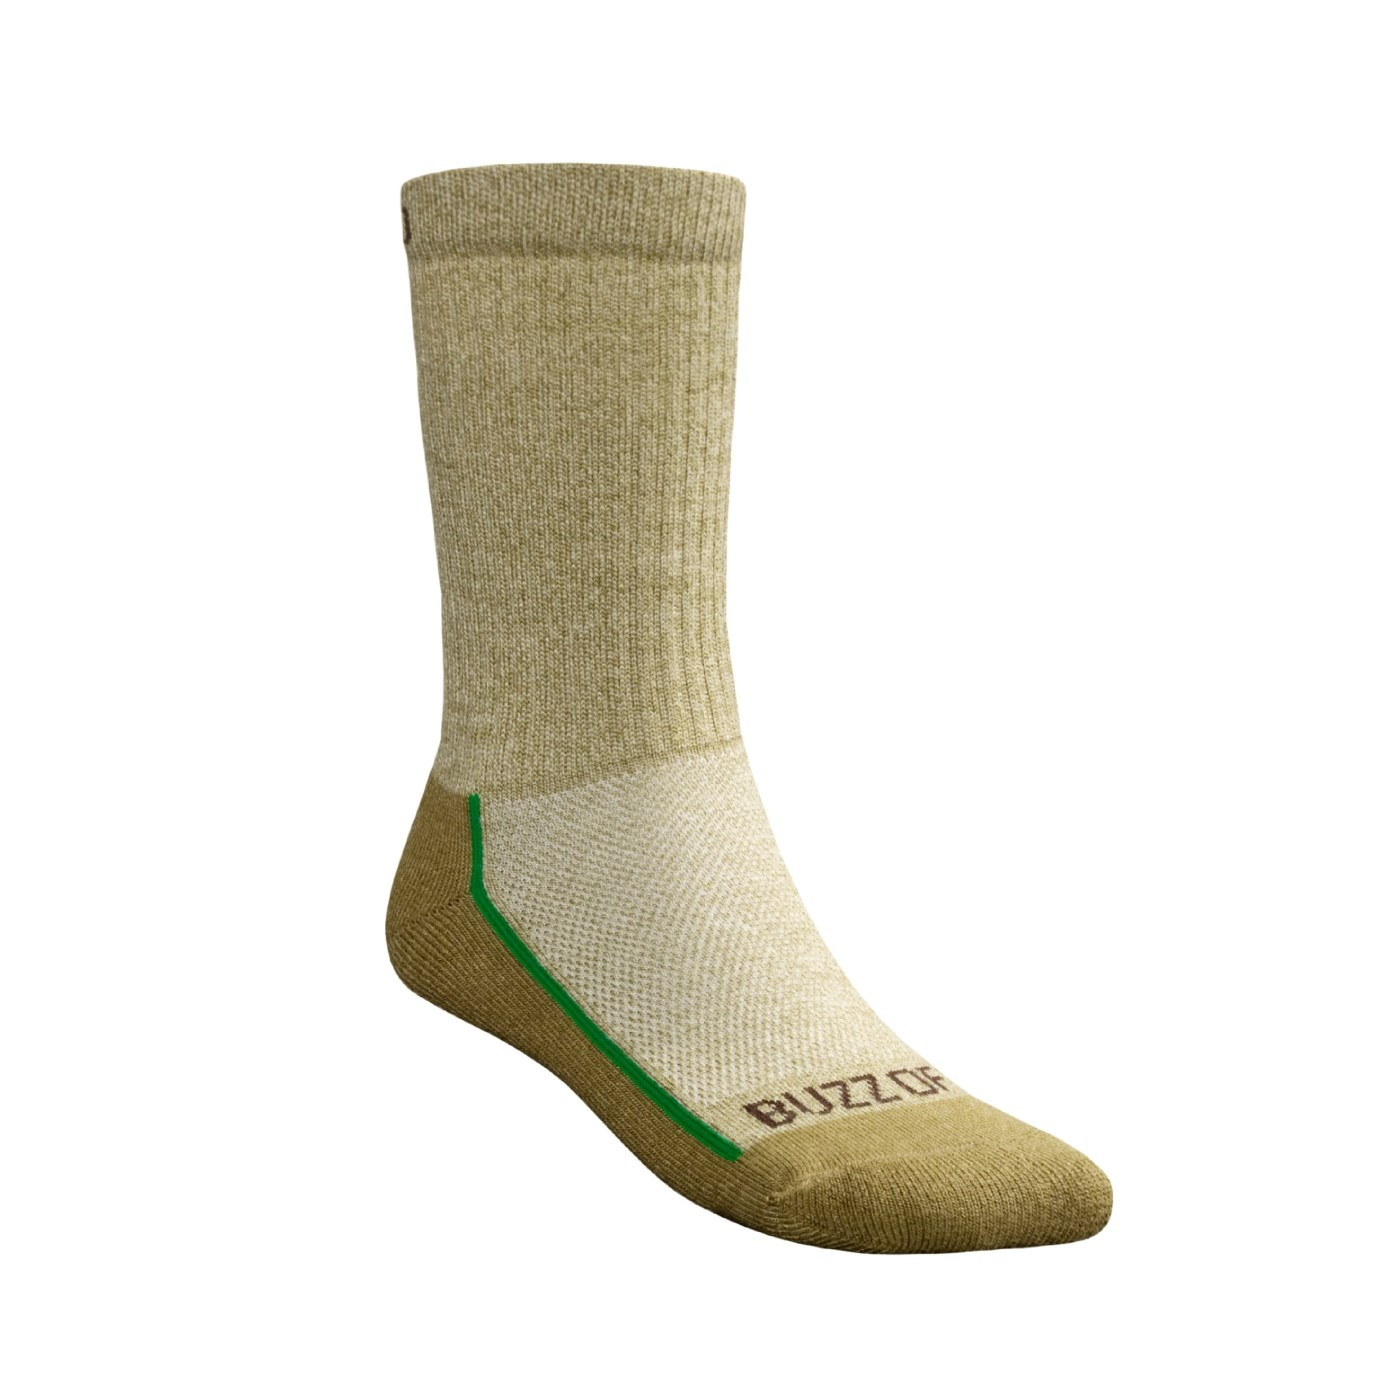 ExOfficio Insect Shield® Vented Hiker Socks (For Men) 2133N 36